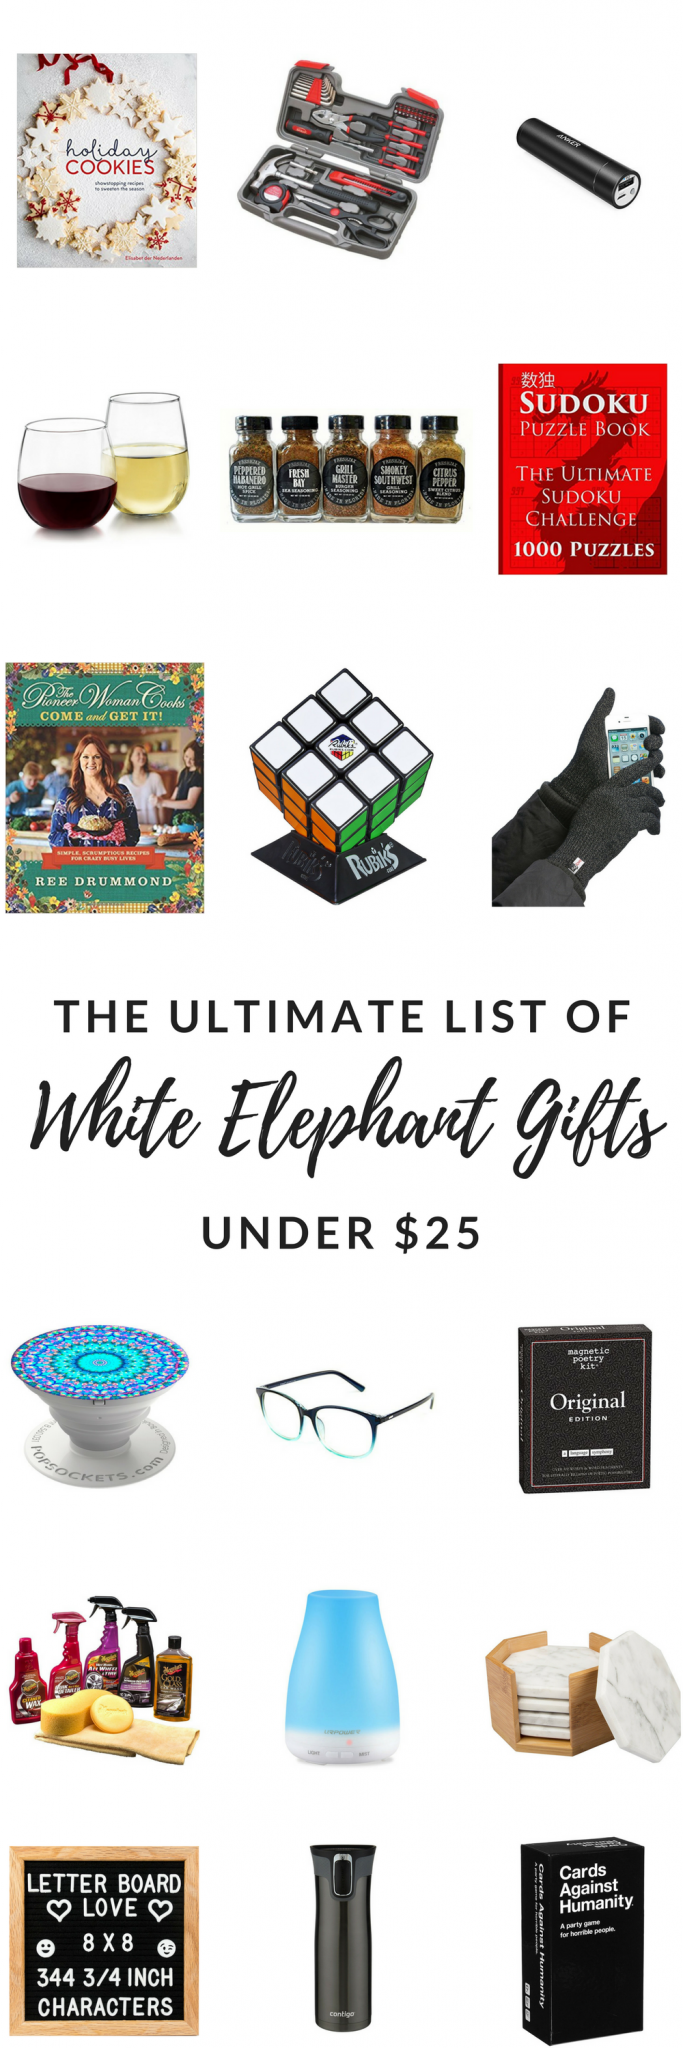 Have a work gift exchange? Check out this list of the best ideas for a White Elephant Gift Exchange - most of them gender neutral and available on Amazon! #Gifts #GiftExchange #WhiteElephant